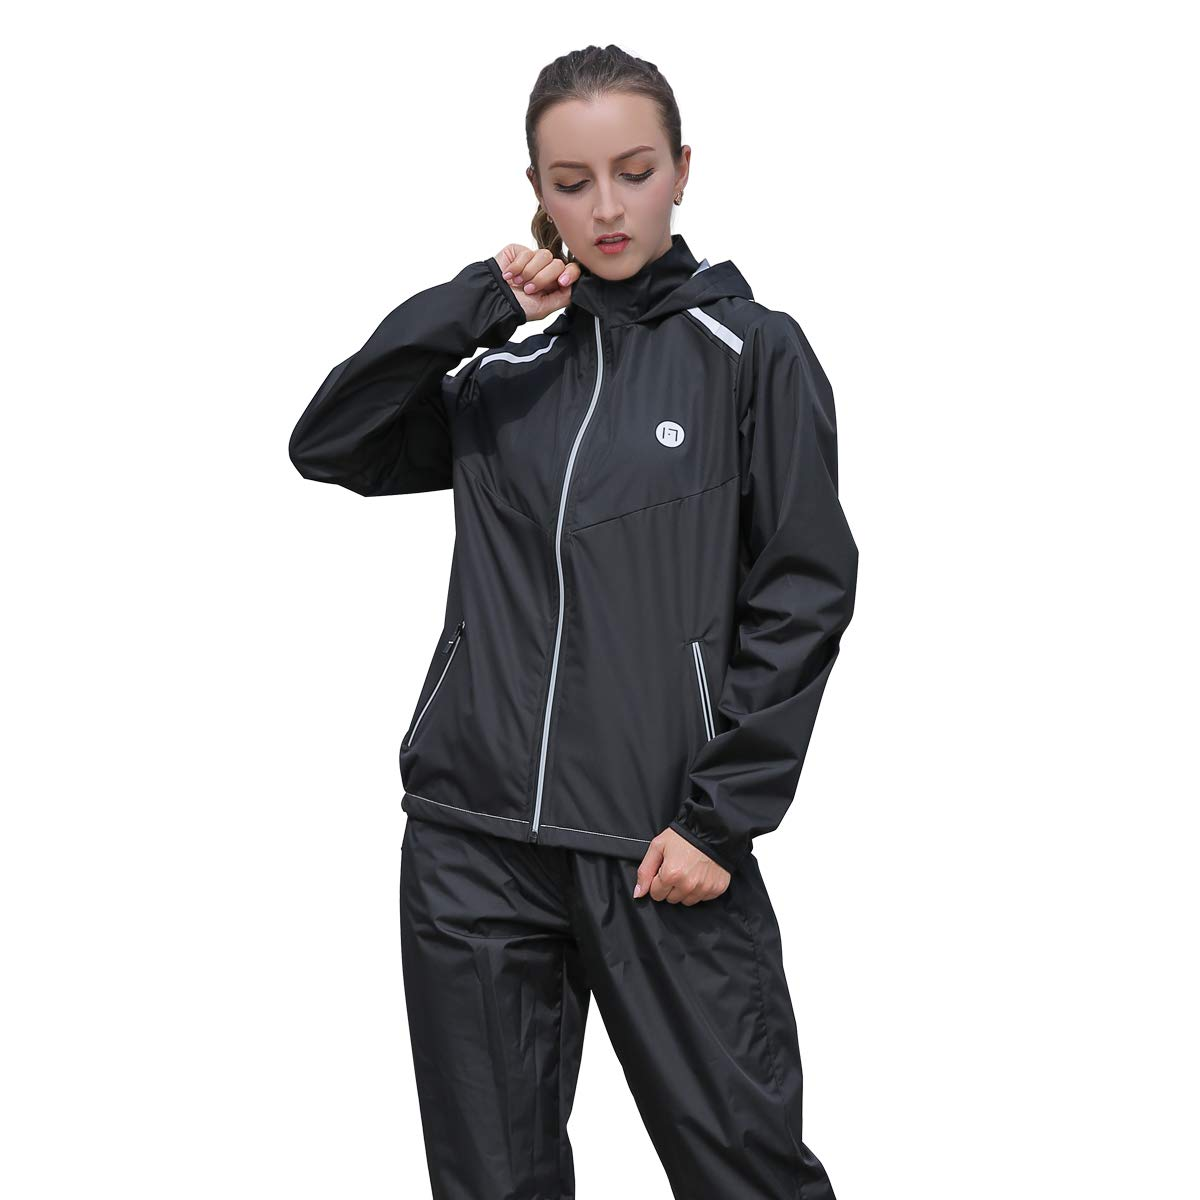 DNRZY Sauna Suit Women for Weight Lose Sweat Suit Slimming Running Anti-Rip Sport Suits Fat Burner Sweat Workout Clothes Fitness Durable Hooded Jacket Gym Training Tracksuit, Black